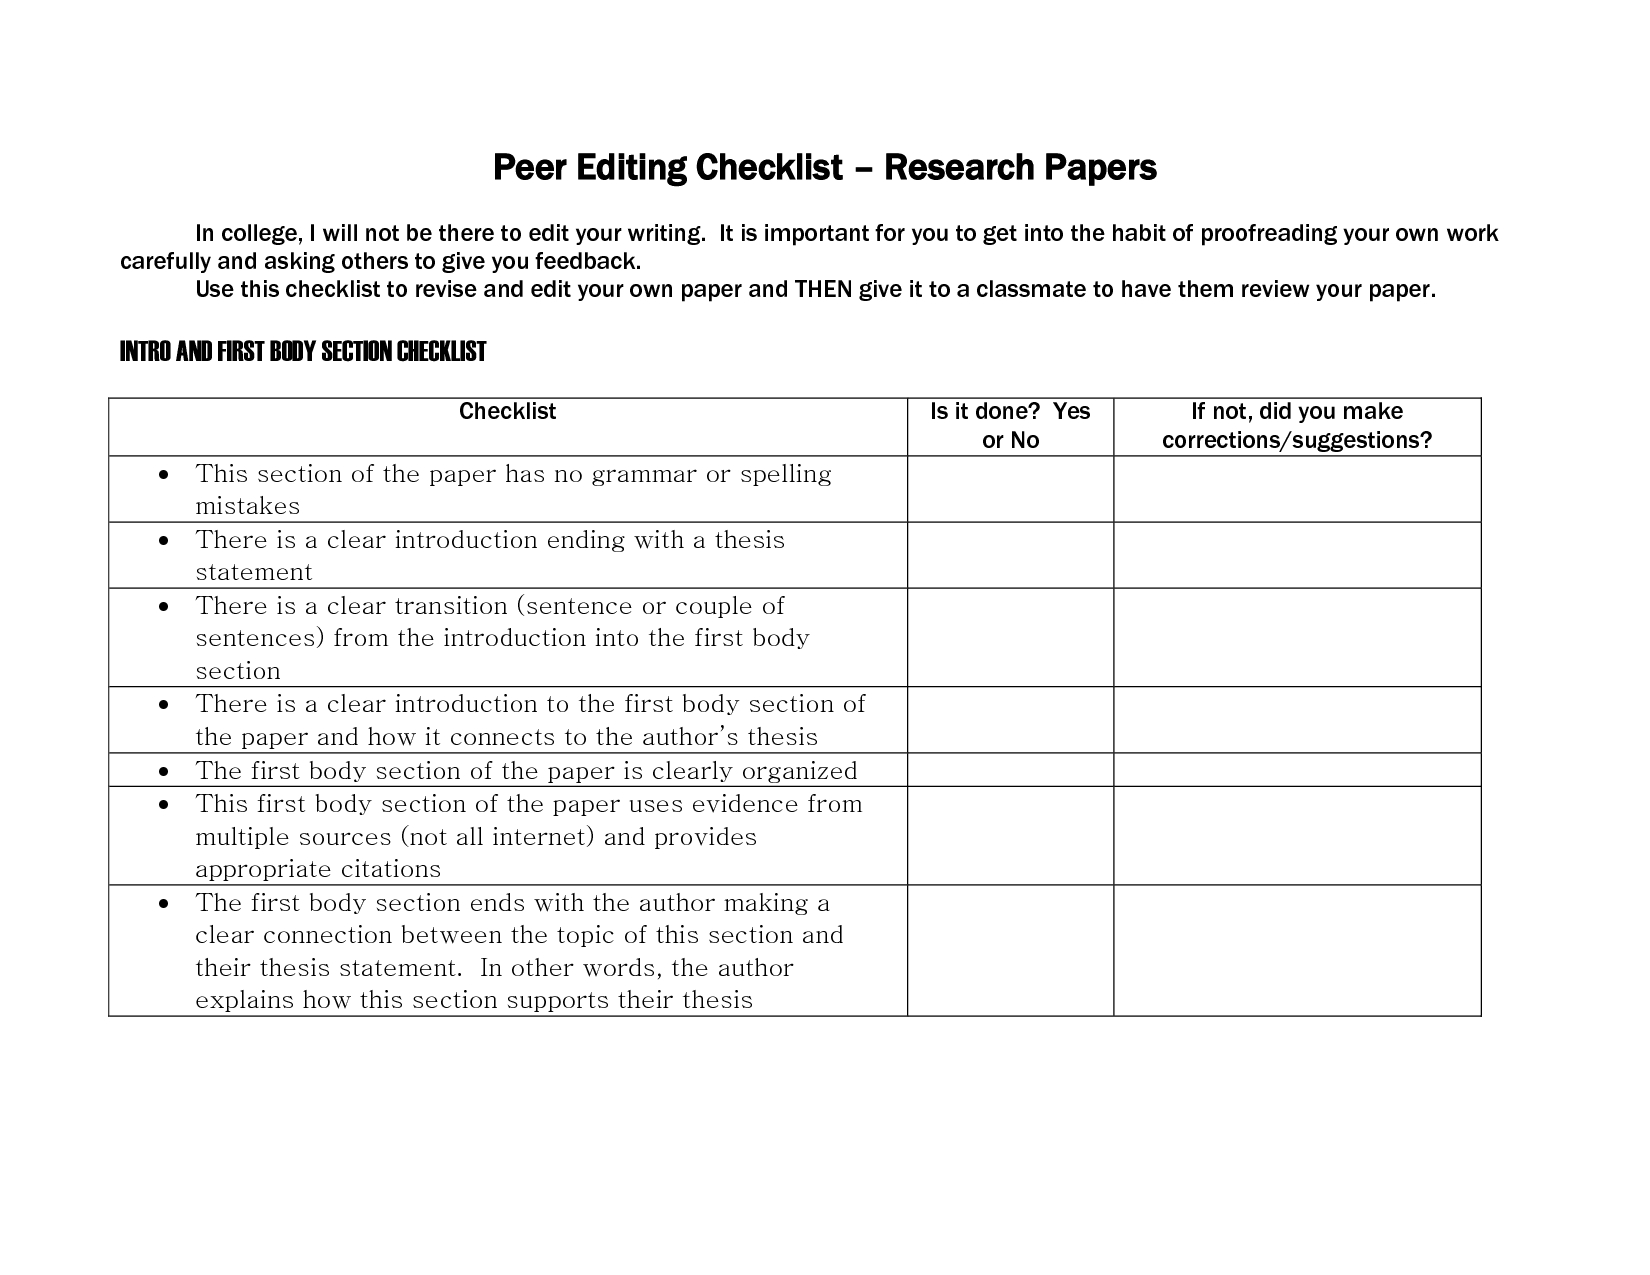 009 Ideas Of Research Paper Peer Edit Sheet Excellent Editing Worksheet Best Checklist Scientific Services Academic Jobs Full